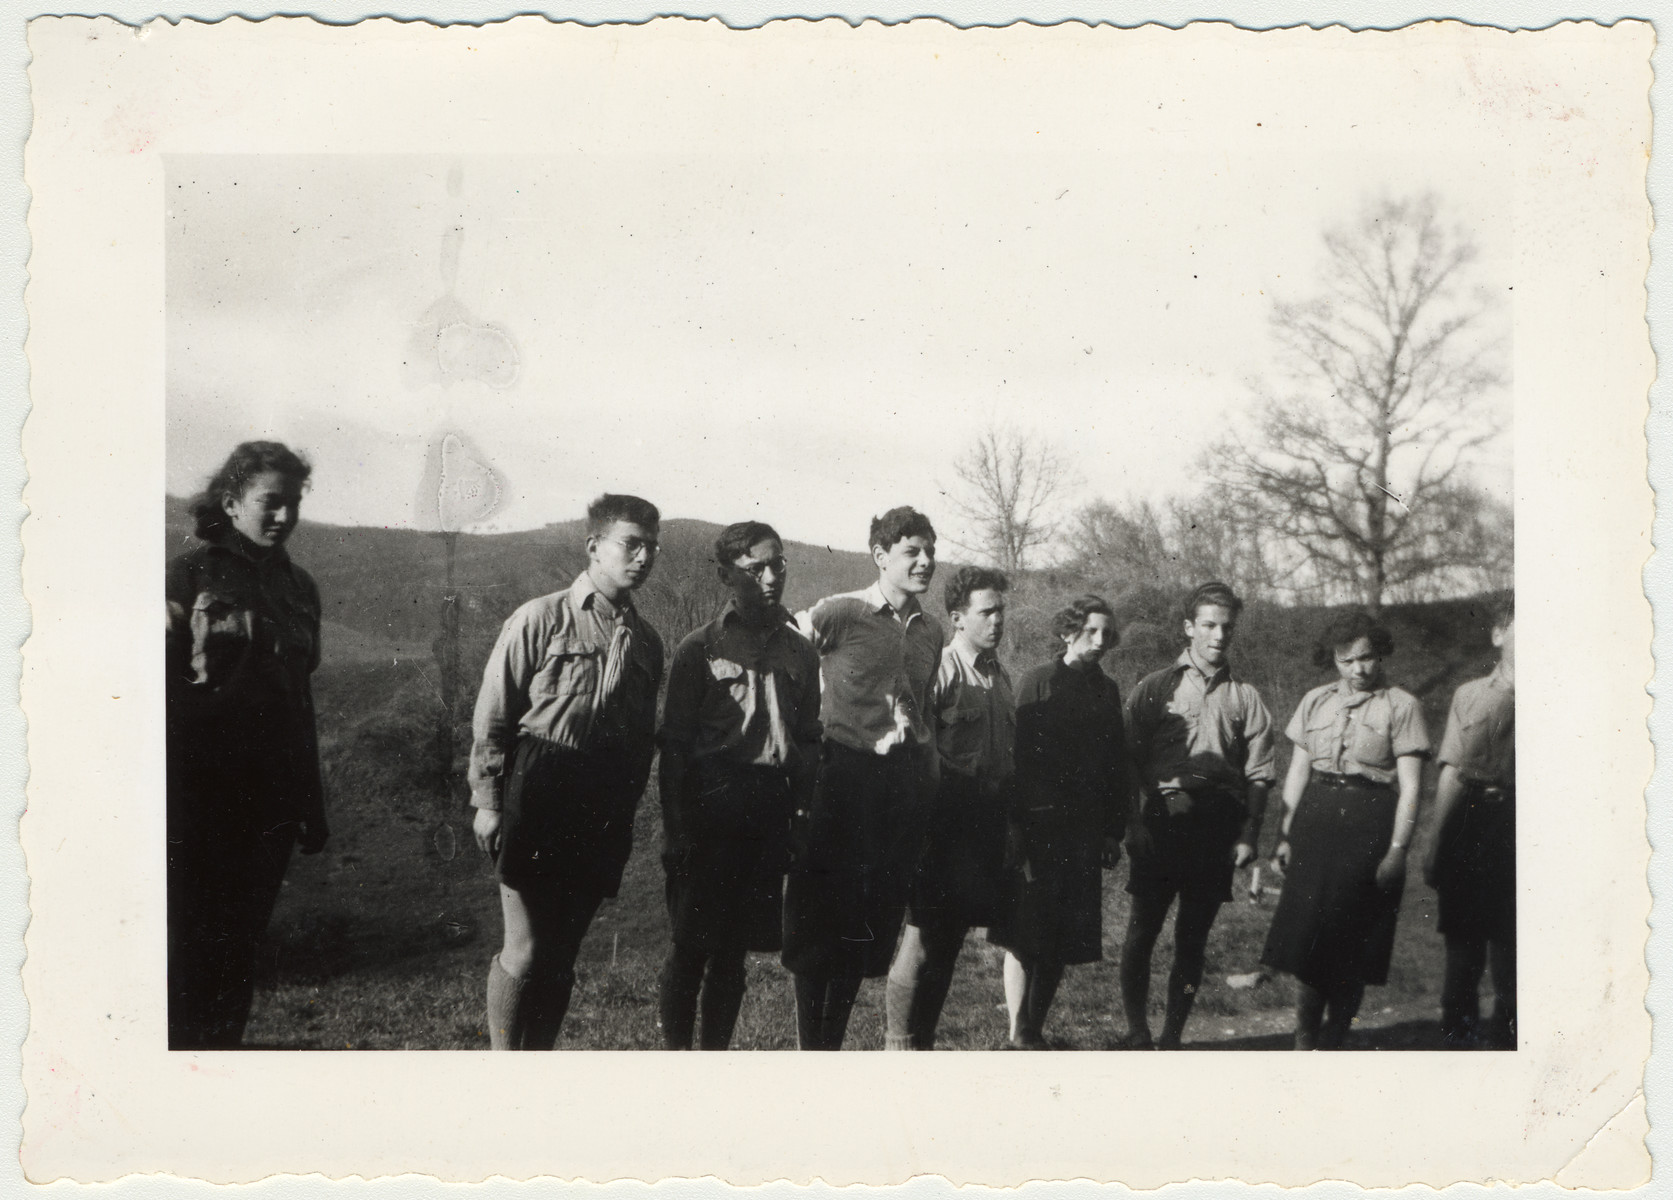 Zionist youth assemble for roll call at their summer camp.  Pictured are Lony Browar, Henry Felsenstein, Leo, Aby, Teddy Browar, Gerda Jakubow, Pierrot, Lily Bornstein, and Bruno Lewison.